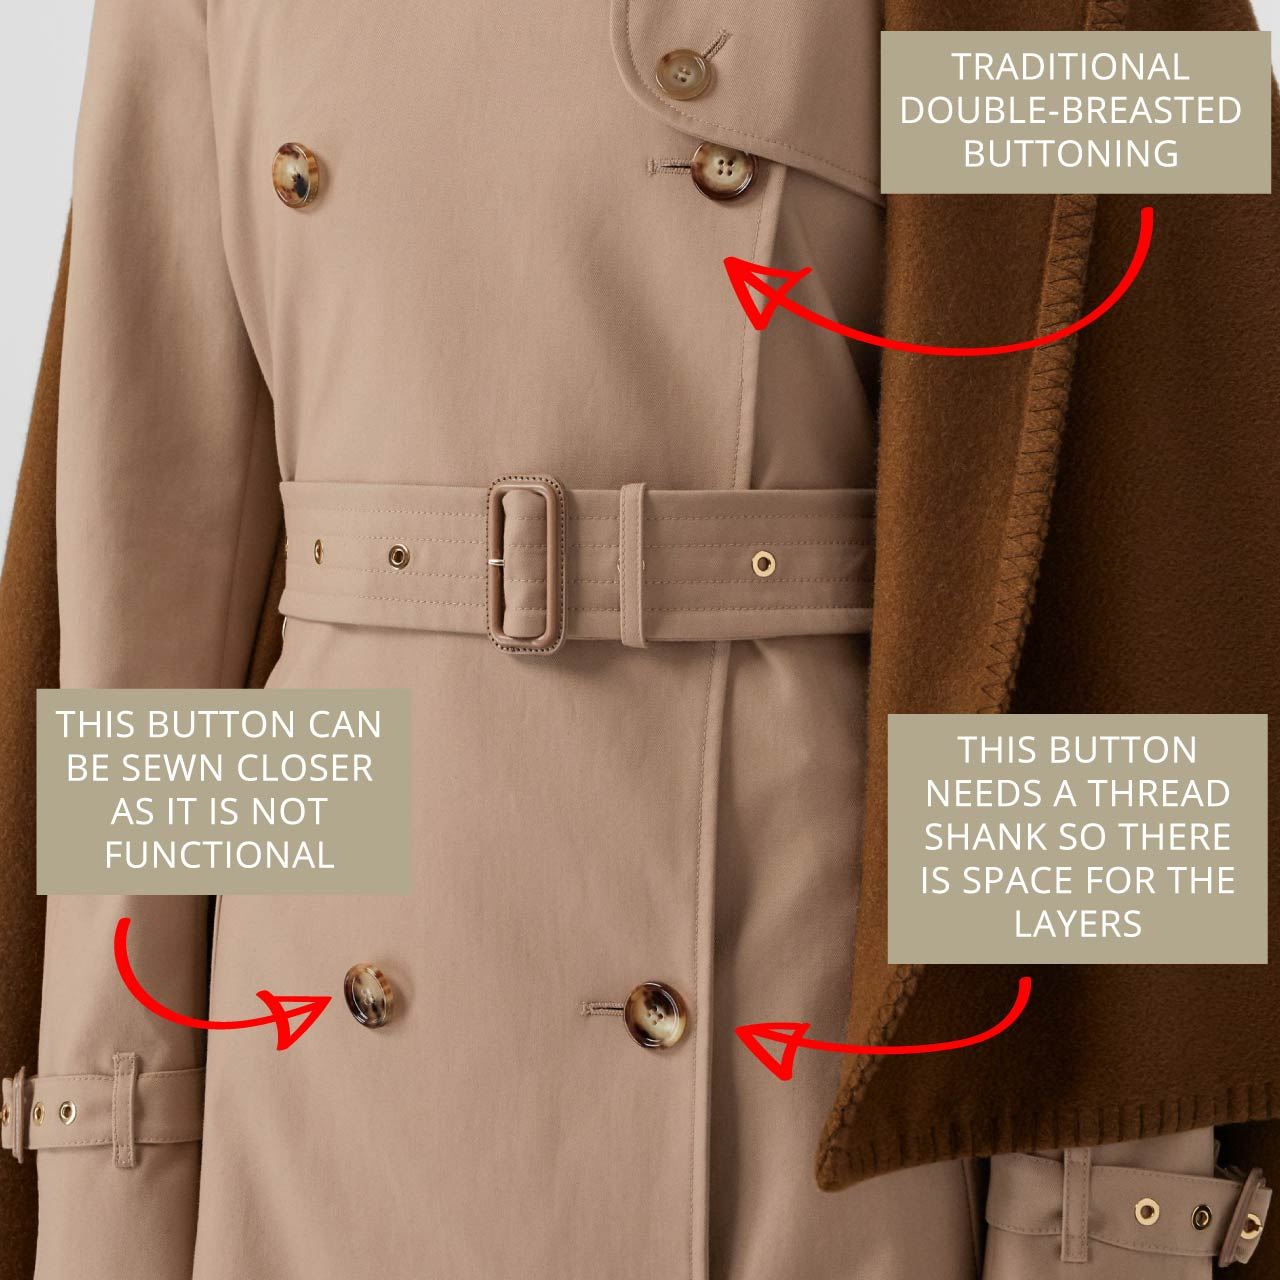 Burberry Trench Coat with double-breasted closure. Trench buttons are often sewn on with a thread shank for extra space. The Cutting Class.